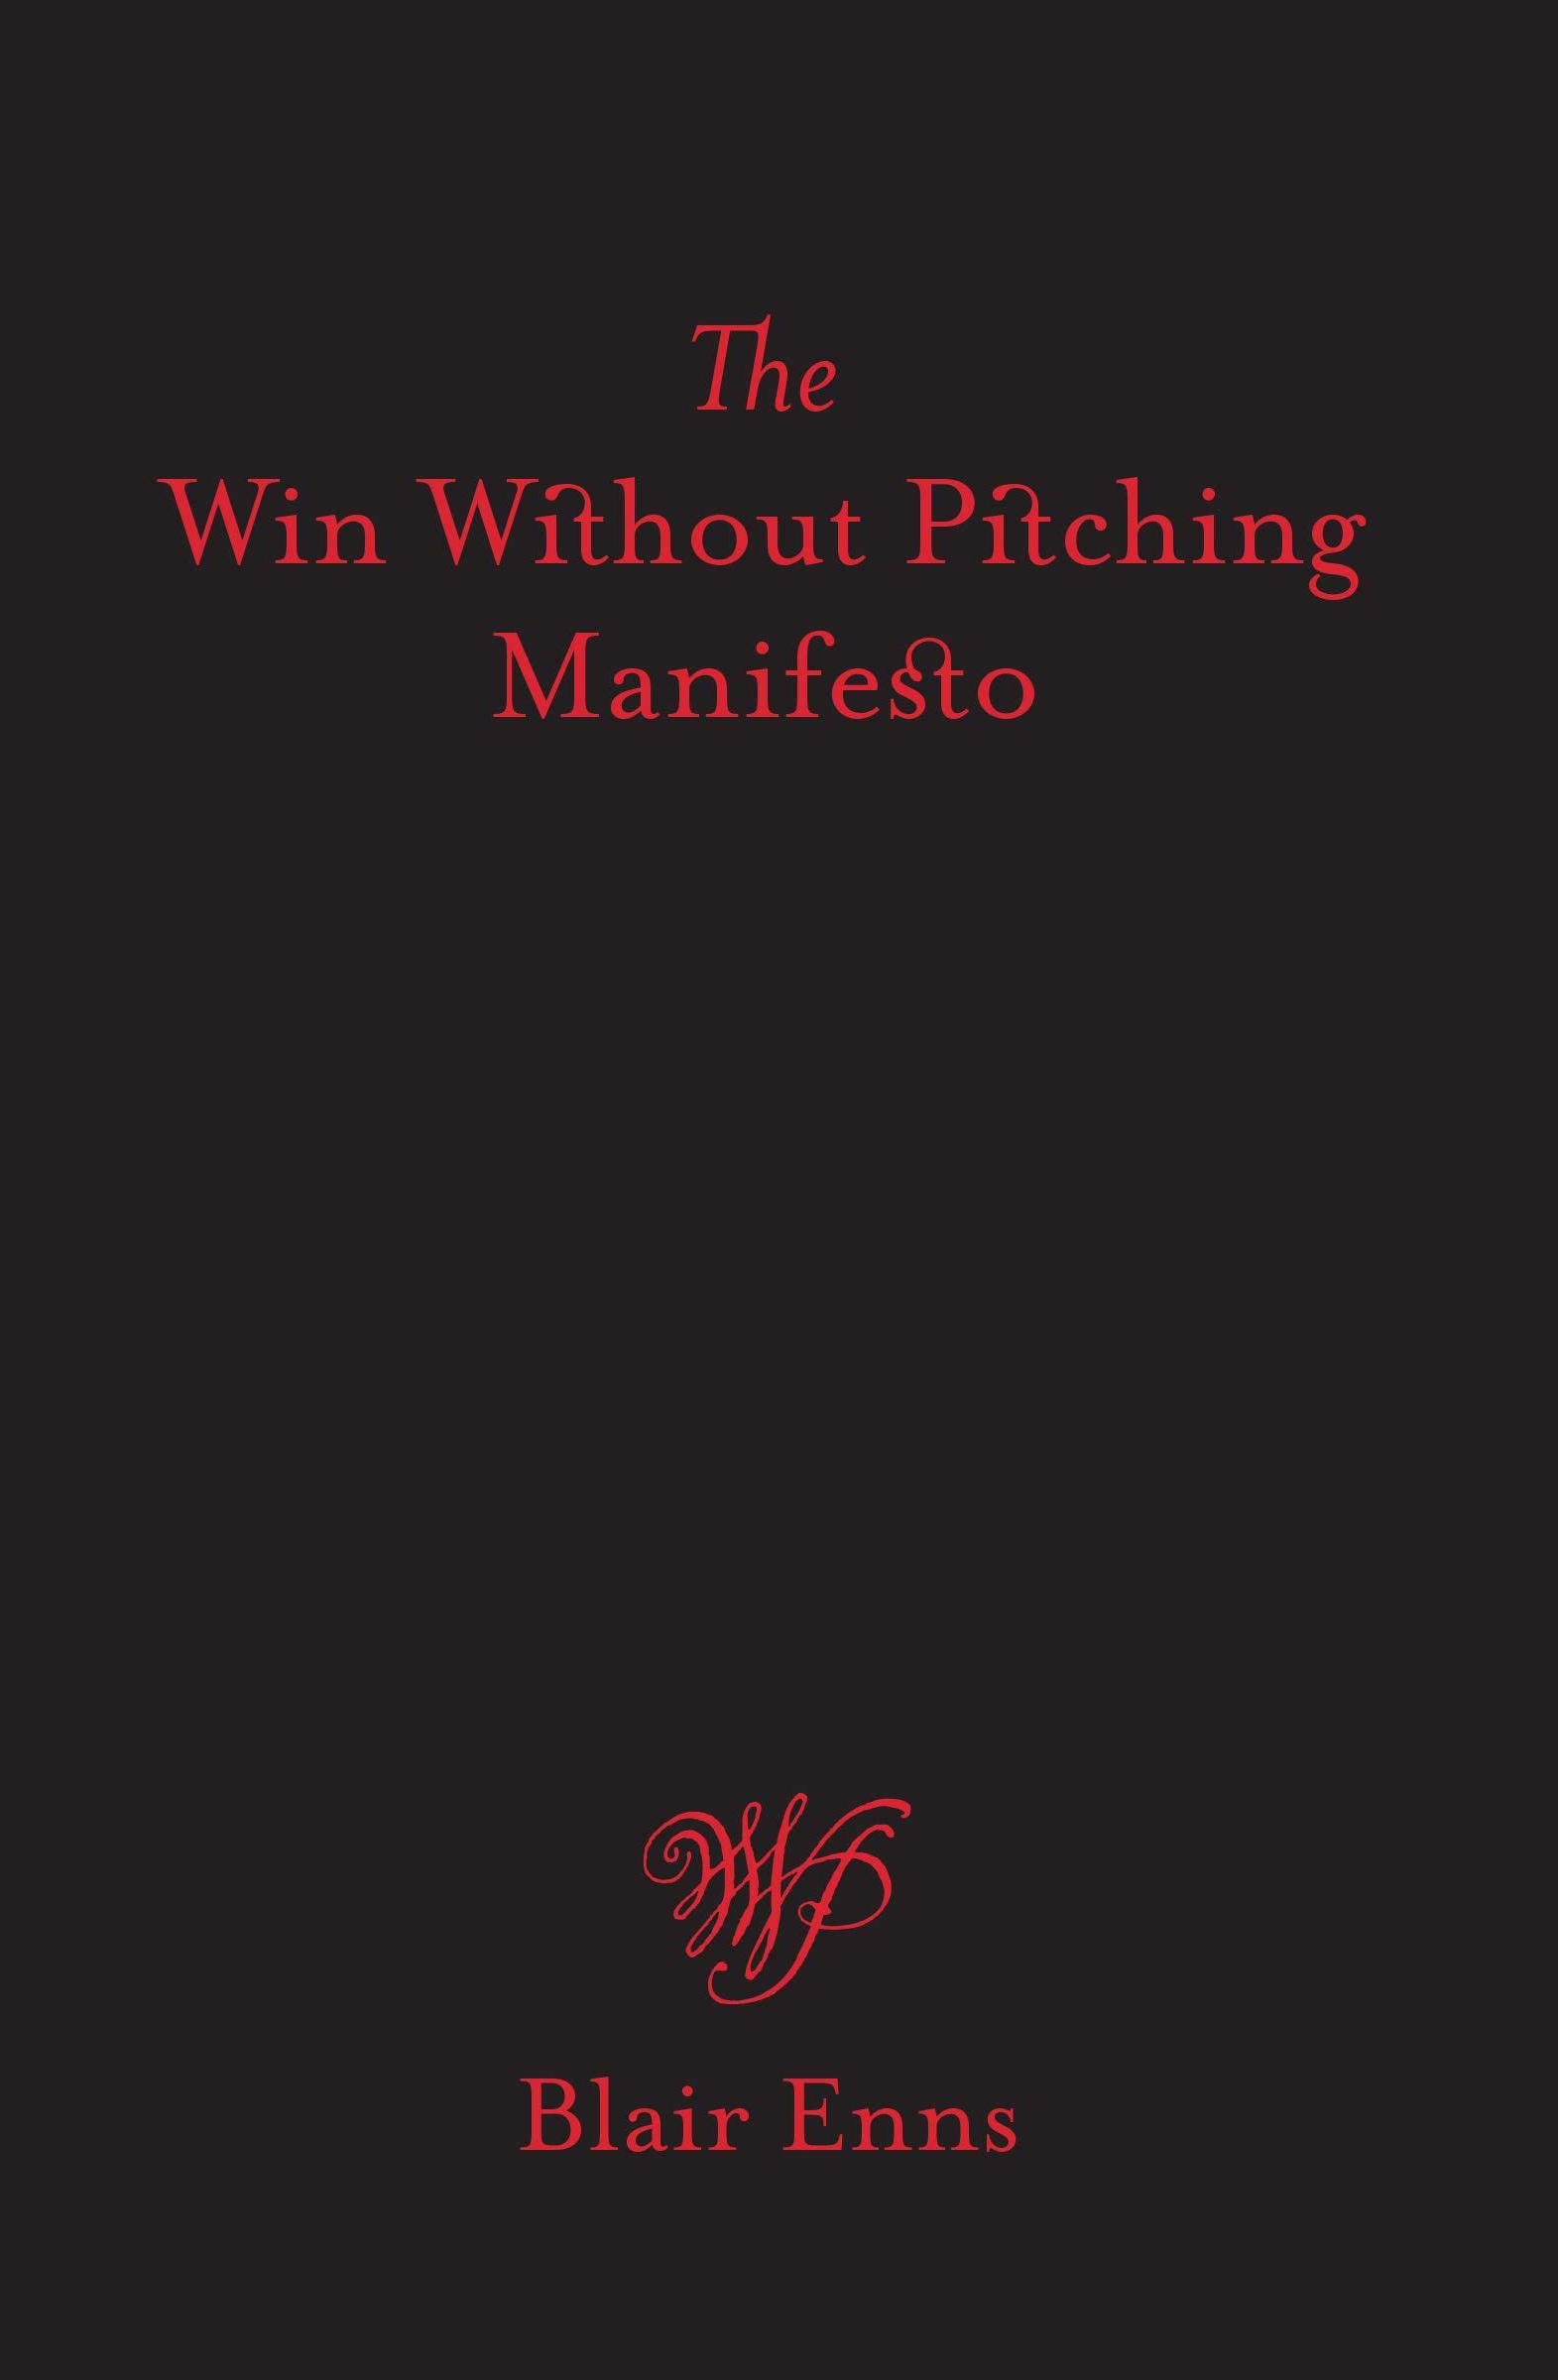 The Win Without Pitching Manifesto book cover